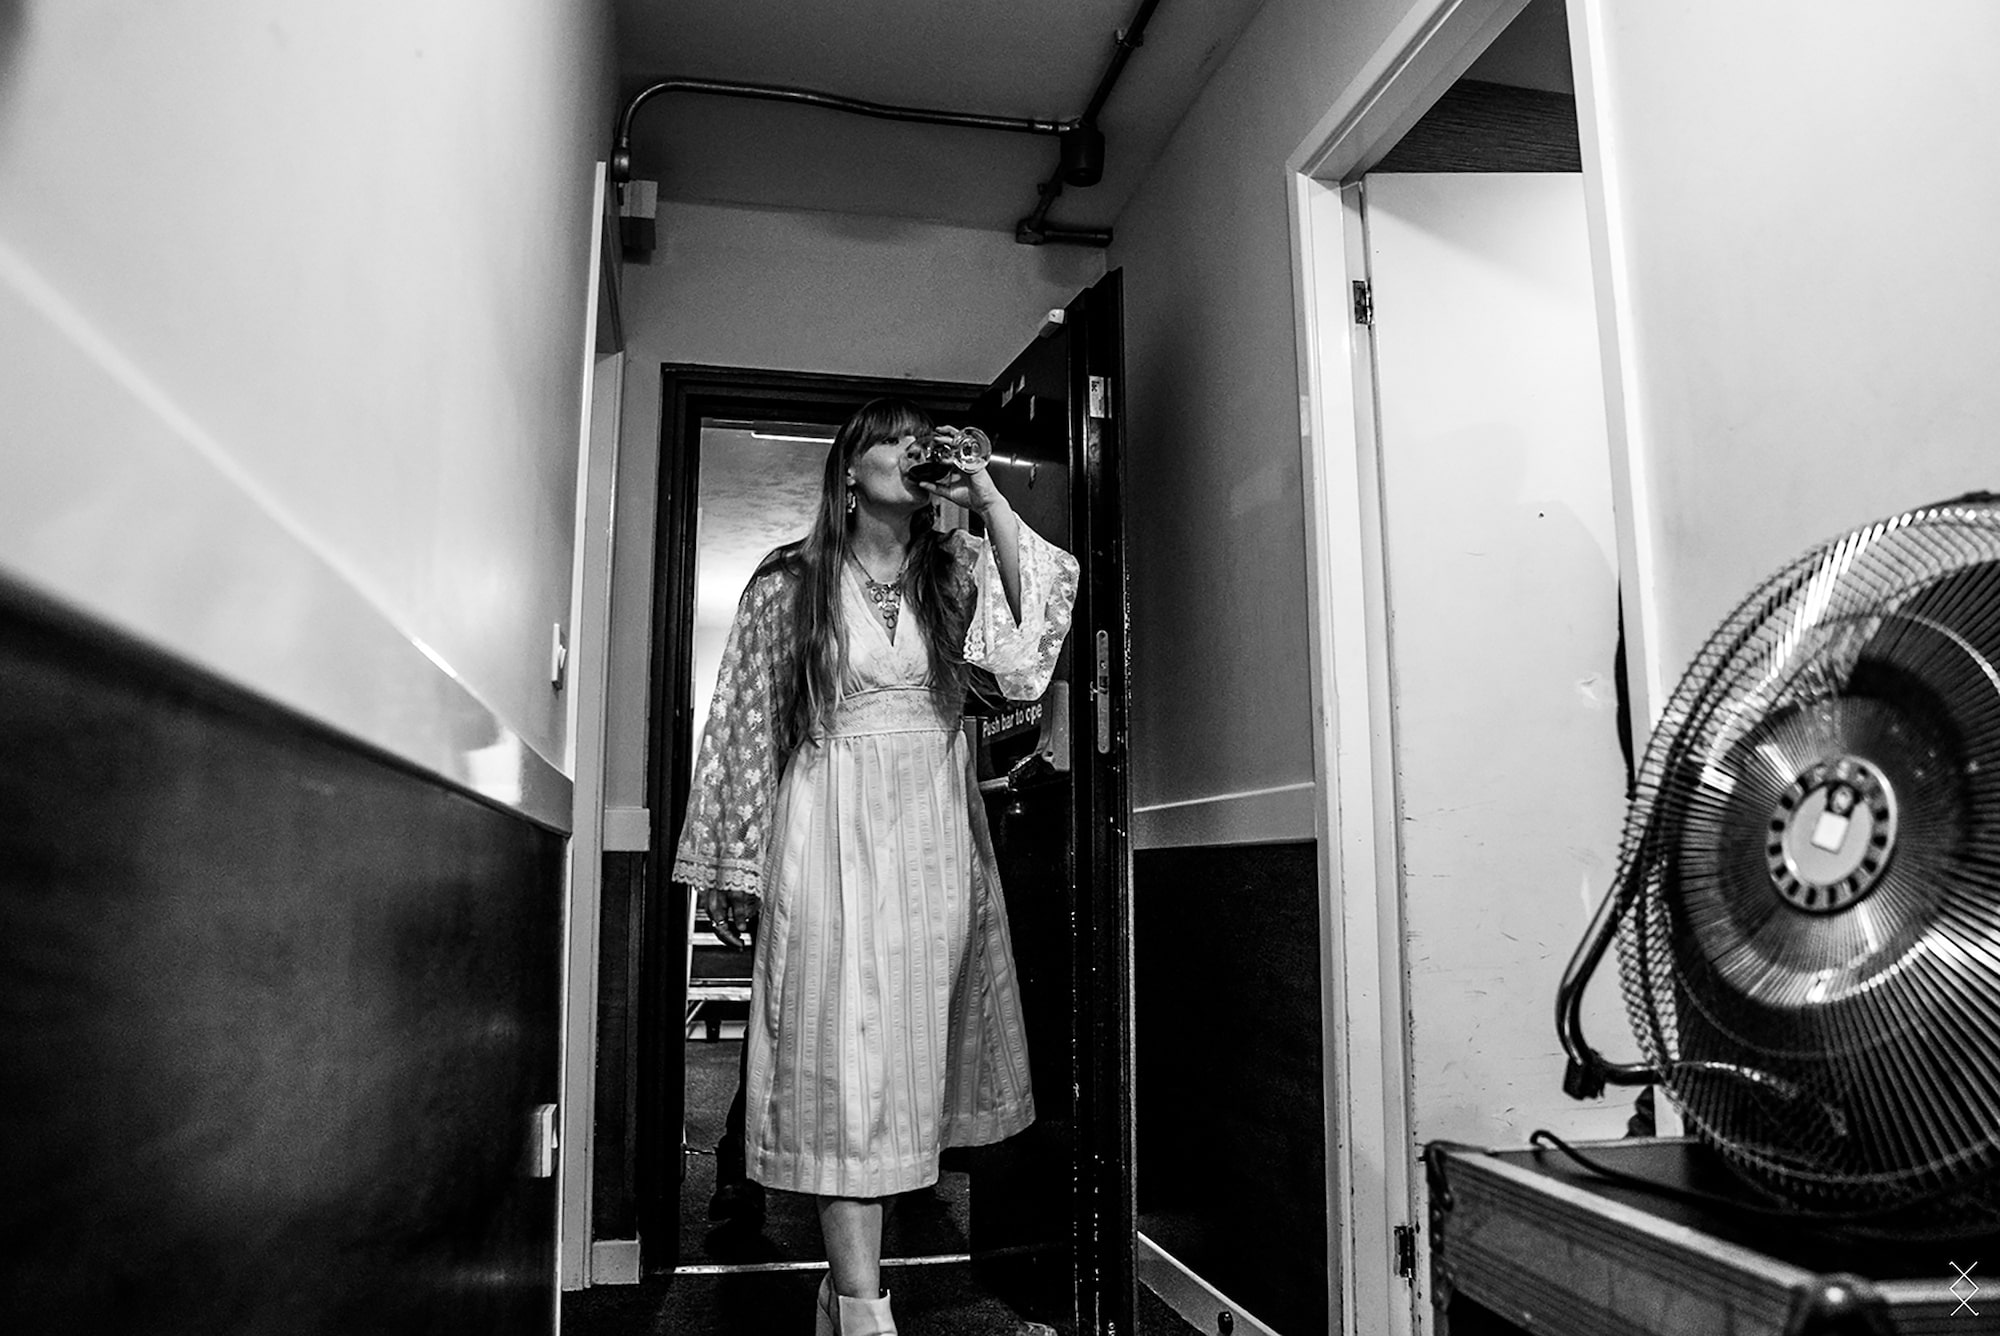 maaike ronhaar sony alpha 7SII courtney marie andrews tips a glass of wine back as she waits backstage at a concert